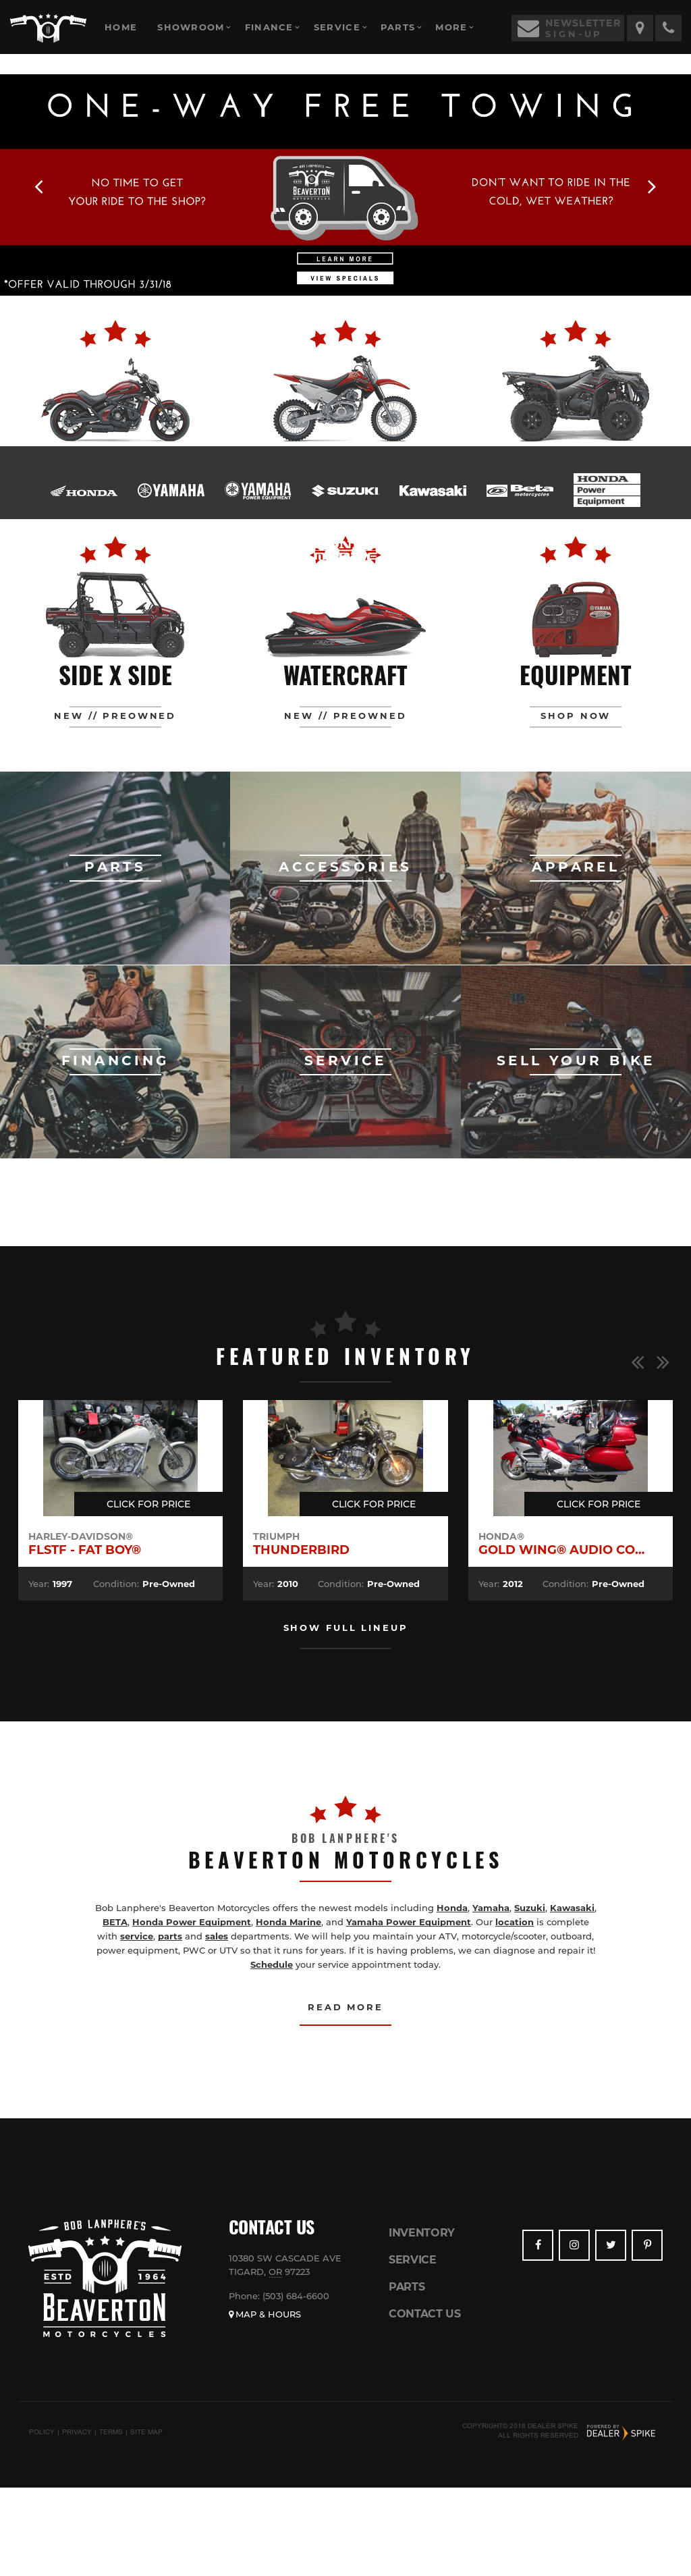 Beavertonmotorcycles Competitors, Revenue and Employees - Owler